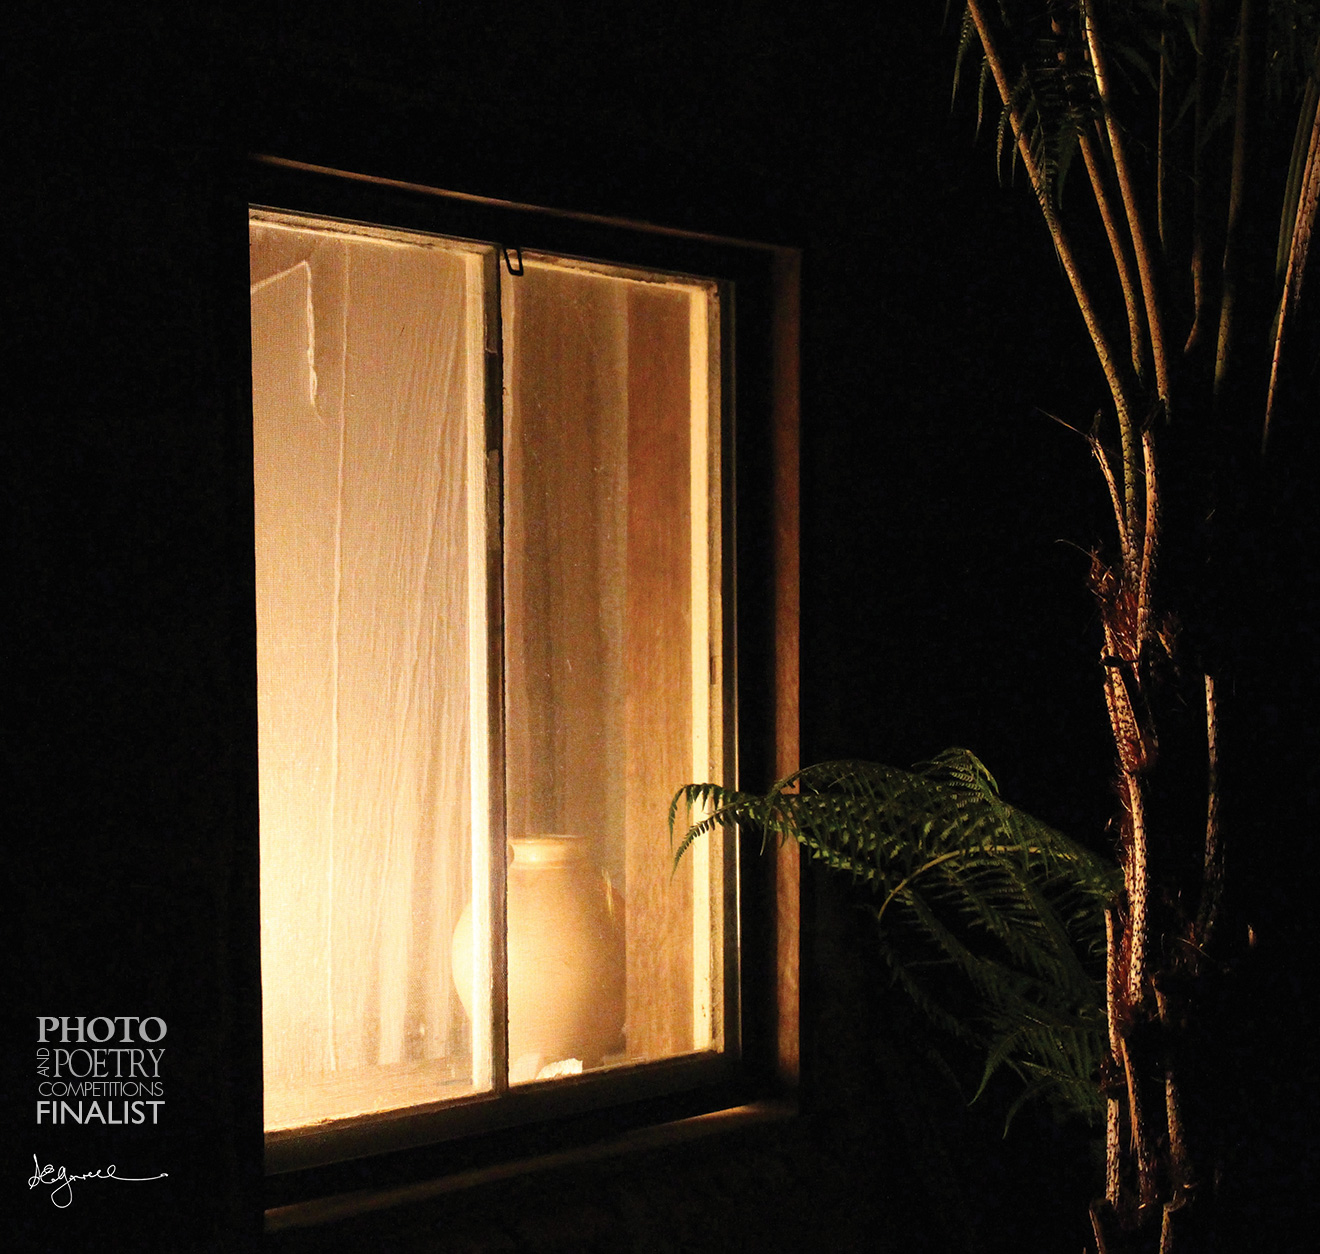 Steve Gorrell - Evening Light - Window at night - the warm, inviting glow of a rural home.